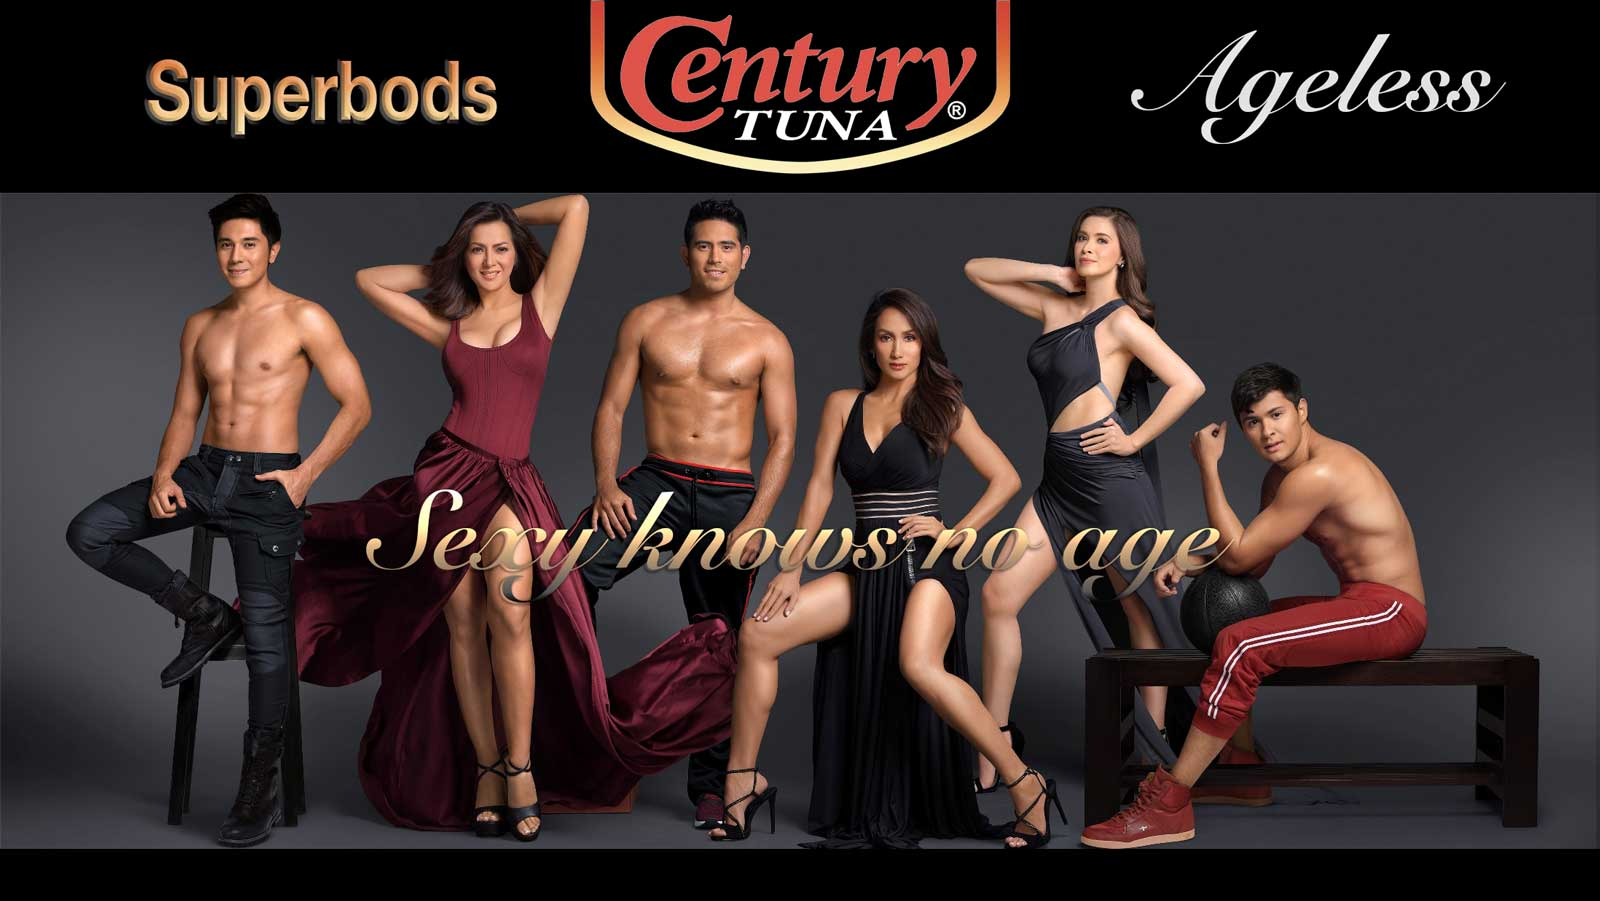 Strong and sexy with Century Tuna